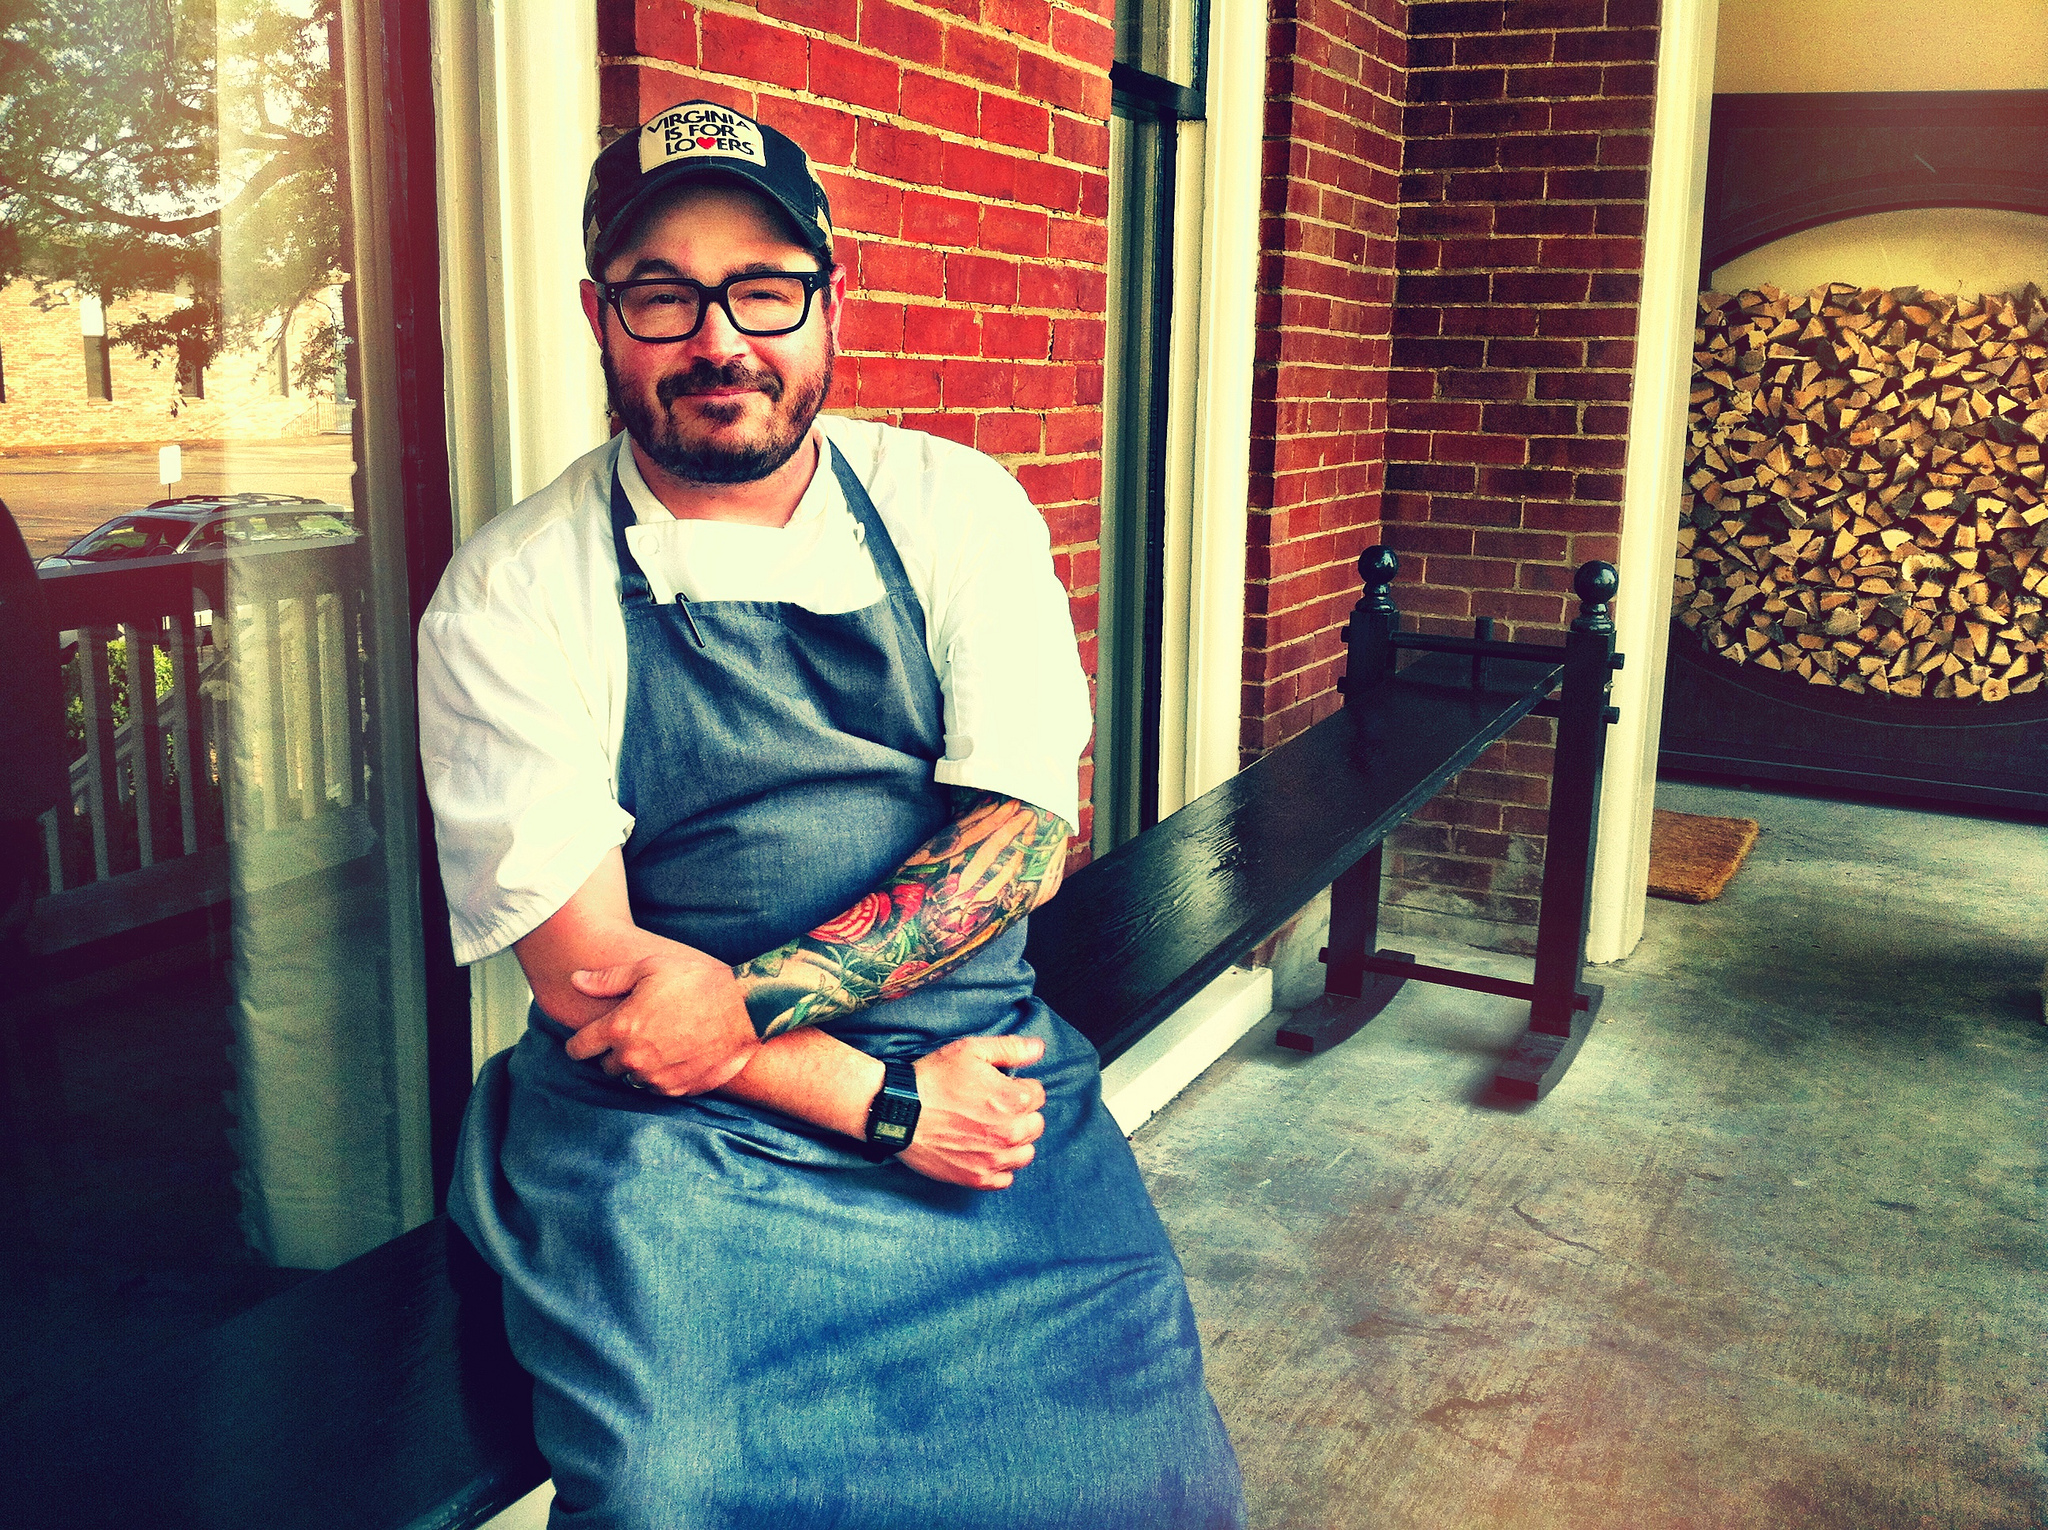 """Chef Sean Brock will host """"A Night of Southern Hospitality,"""" a charity dinner at Jack Rose Dining Saloon. (Photo: breville/flickr)"""